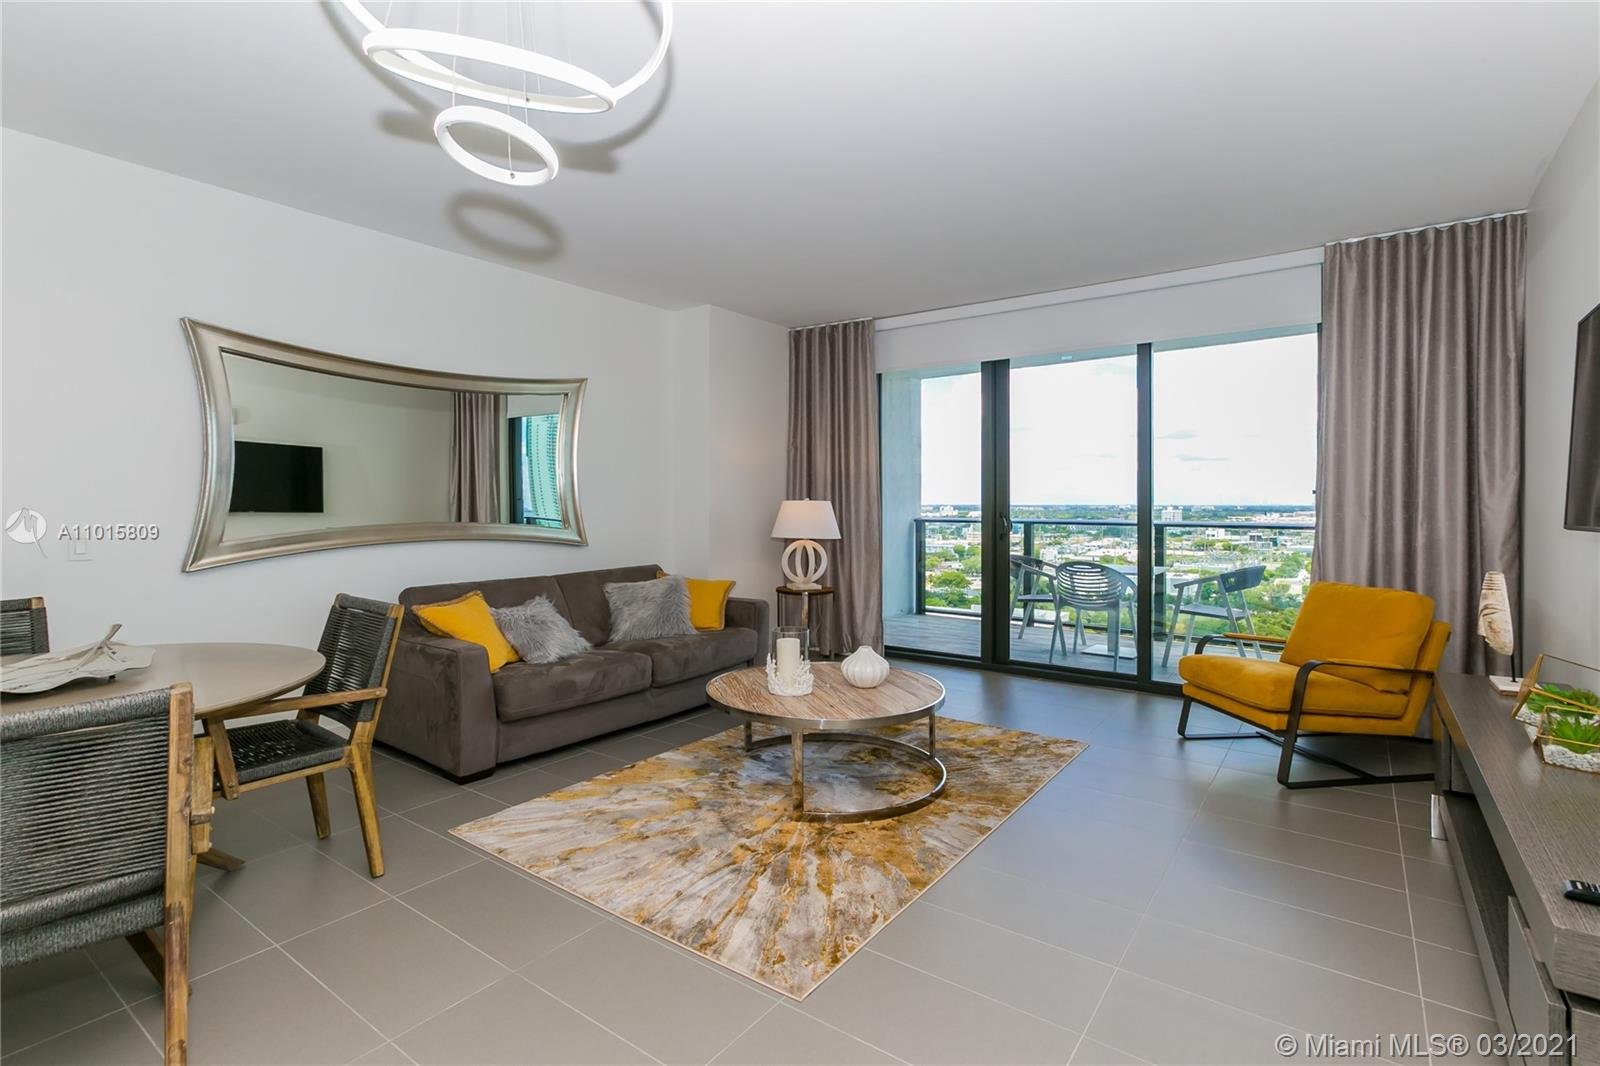 Canvas #1617 - 1600 NE 1 AVE #1617, Miami, FL 33132